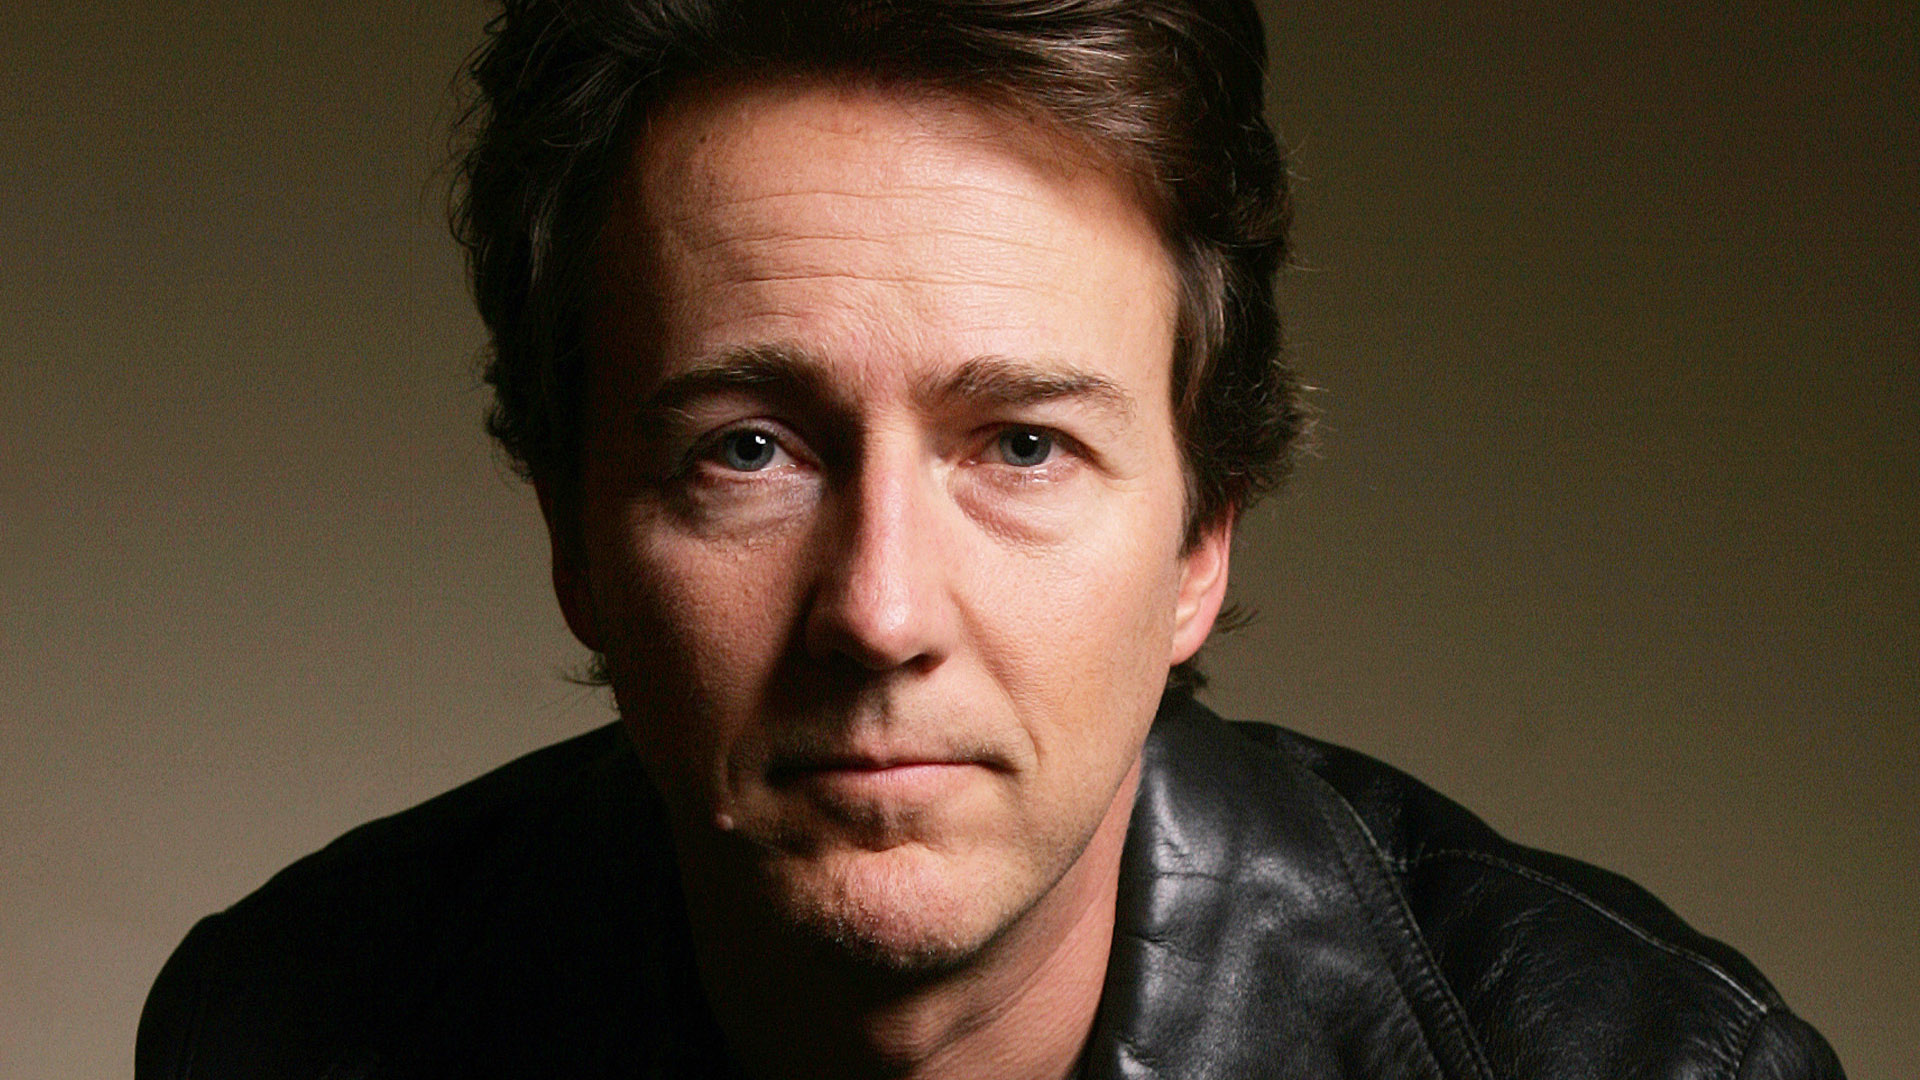 Edward Norton Wallpaper 11   1920 X 1080 stmednet 1920x1080